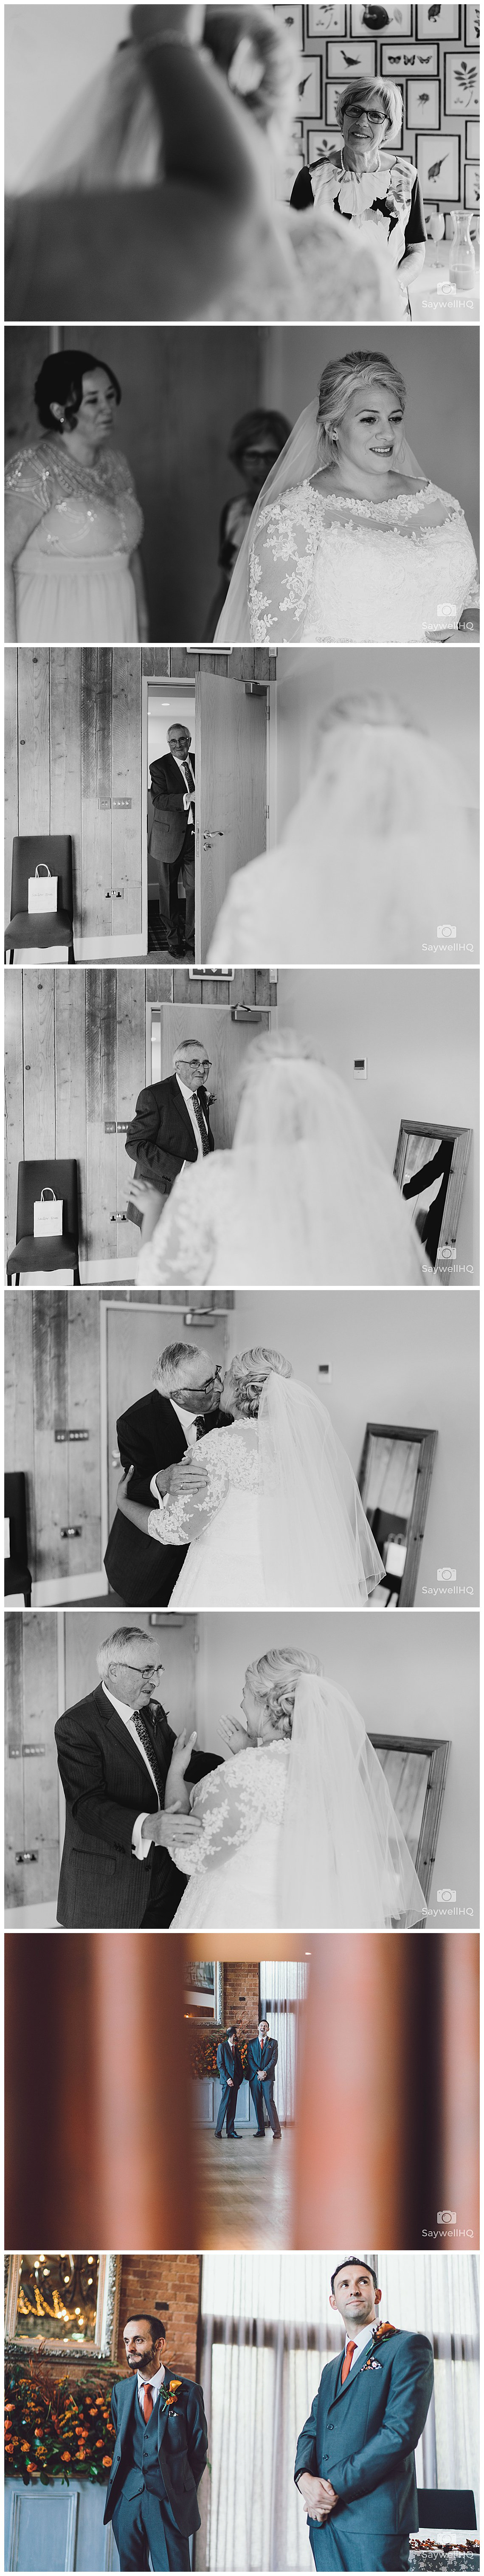 Wedding photography at The Carriage Hall in Nottingham - dad see's the bride before her wedding at carriage hall